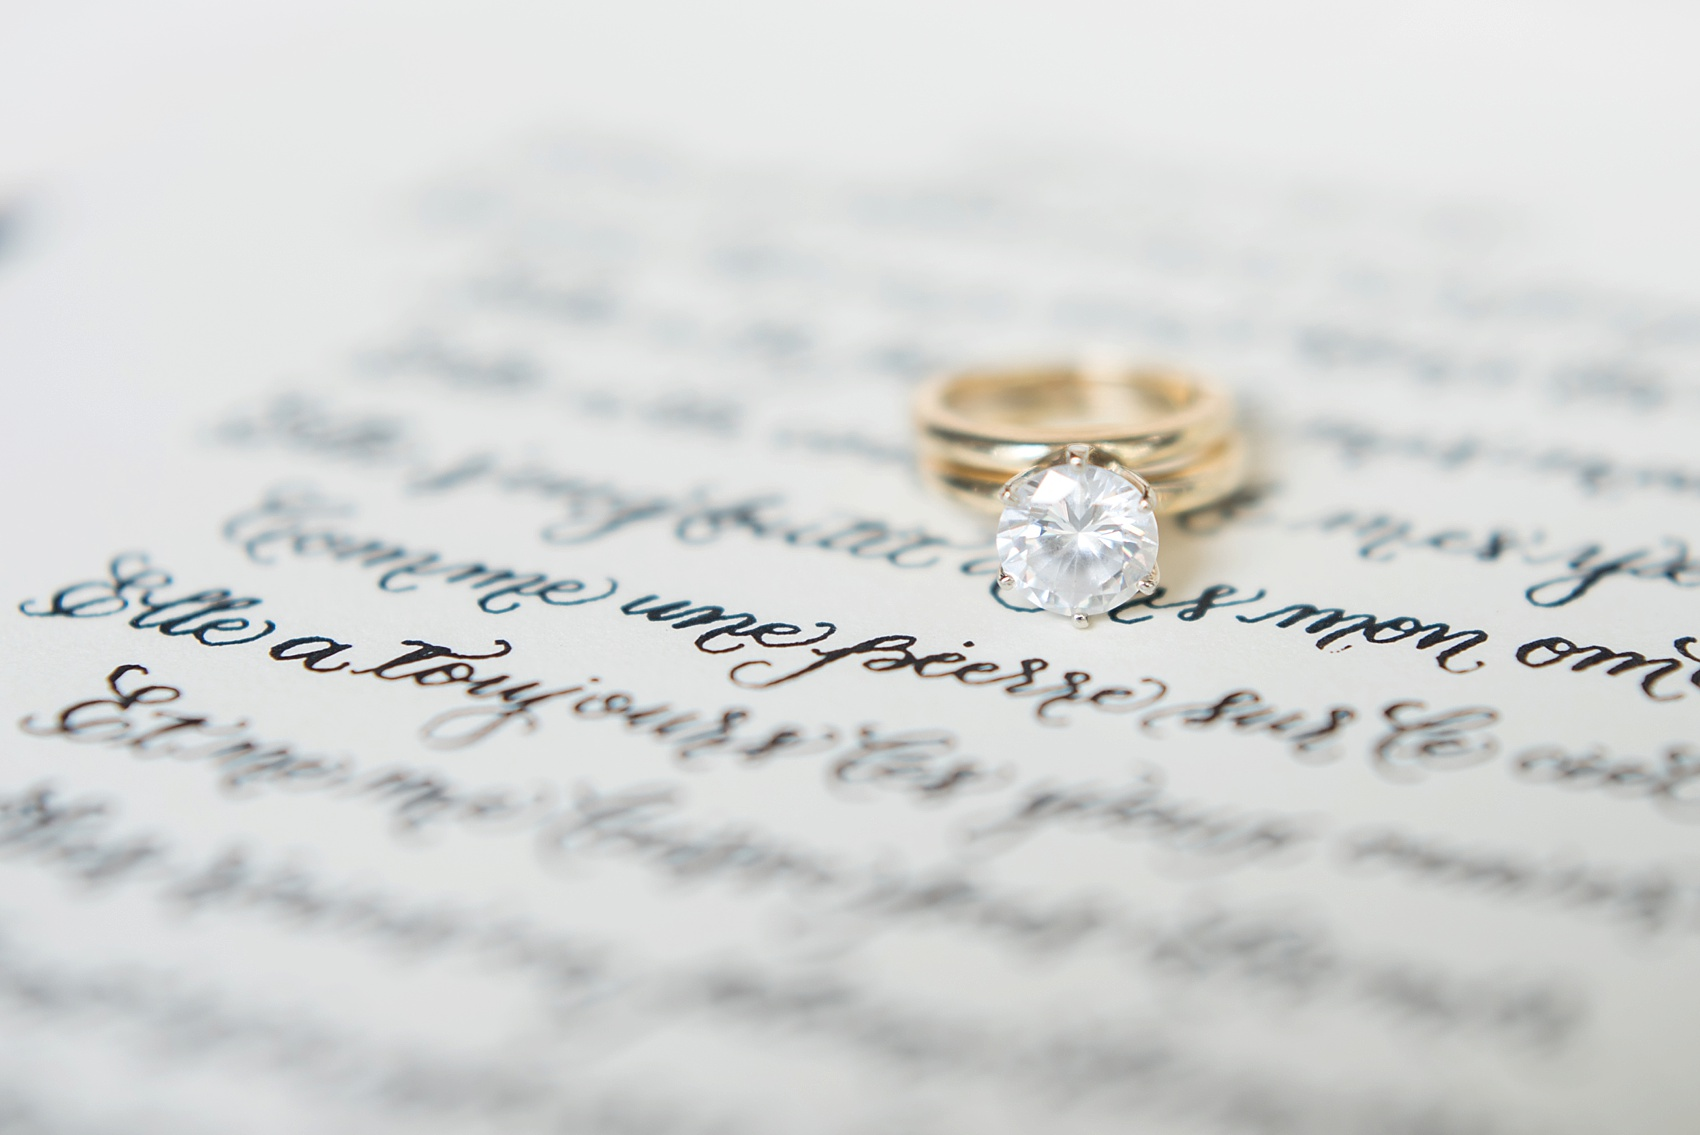 Destination wedding photographer Mikkel Paige captures a glamorous industrial bridal session in Hawaii with Burnett's Boards and Moana Events. Hand calligraphy poem and simple engagement ring.